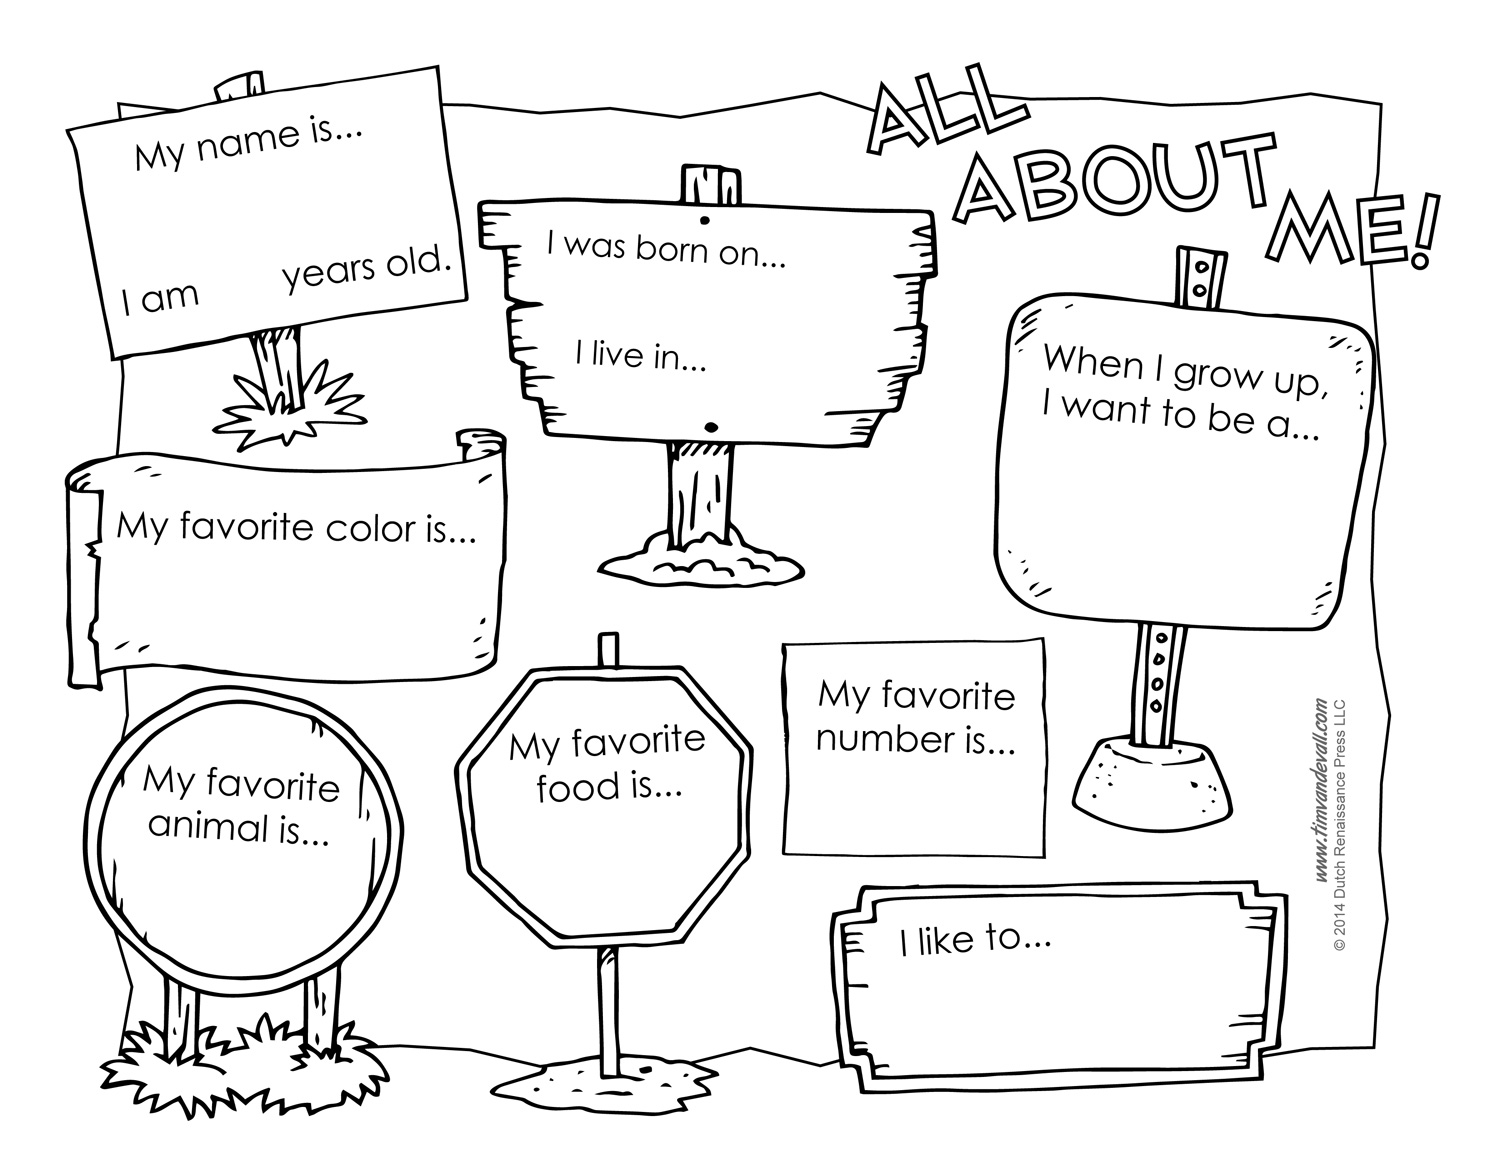 worksheet About Me Worksheet all about me worksheet tims printables download printable